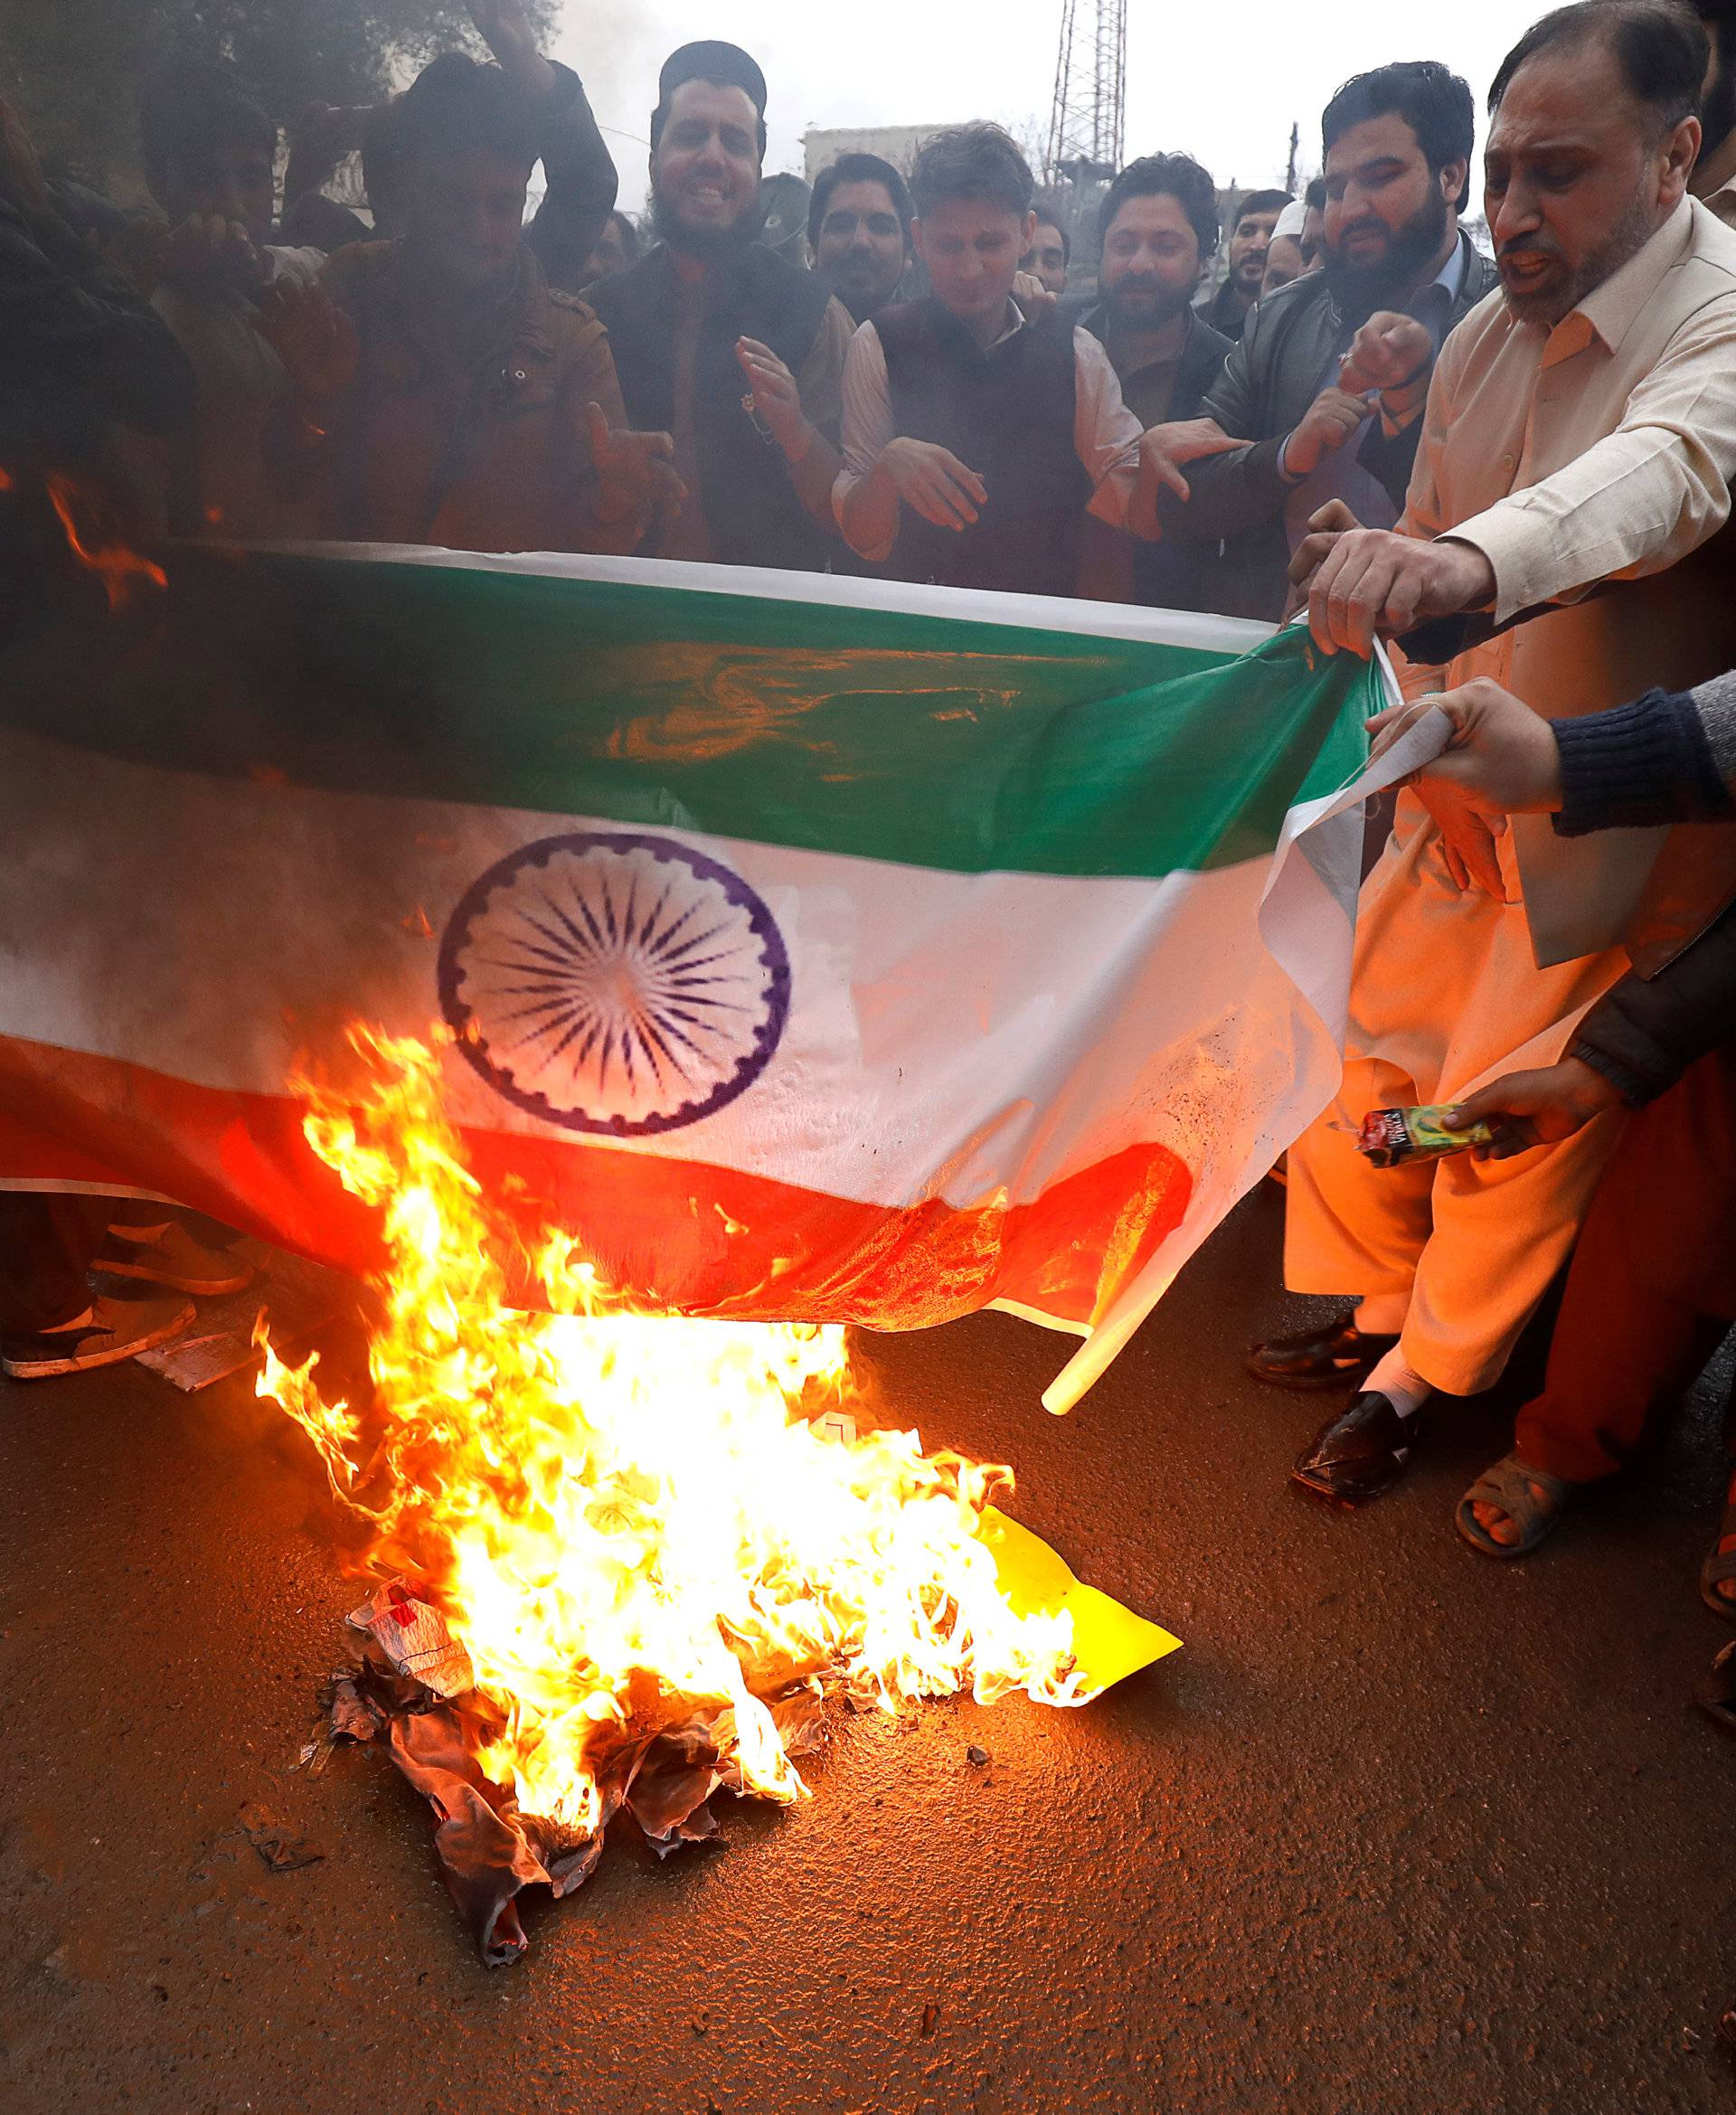 People burn a poster depicting India's flag against what they call airspace violation by the Indian military aircrafts, in a protest in Peshawar